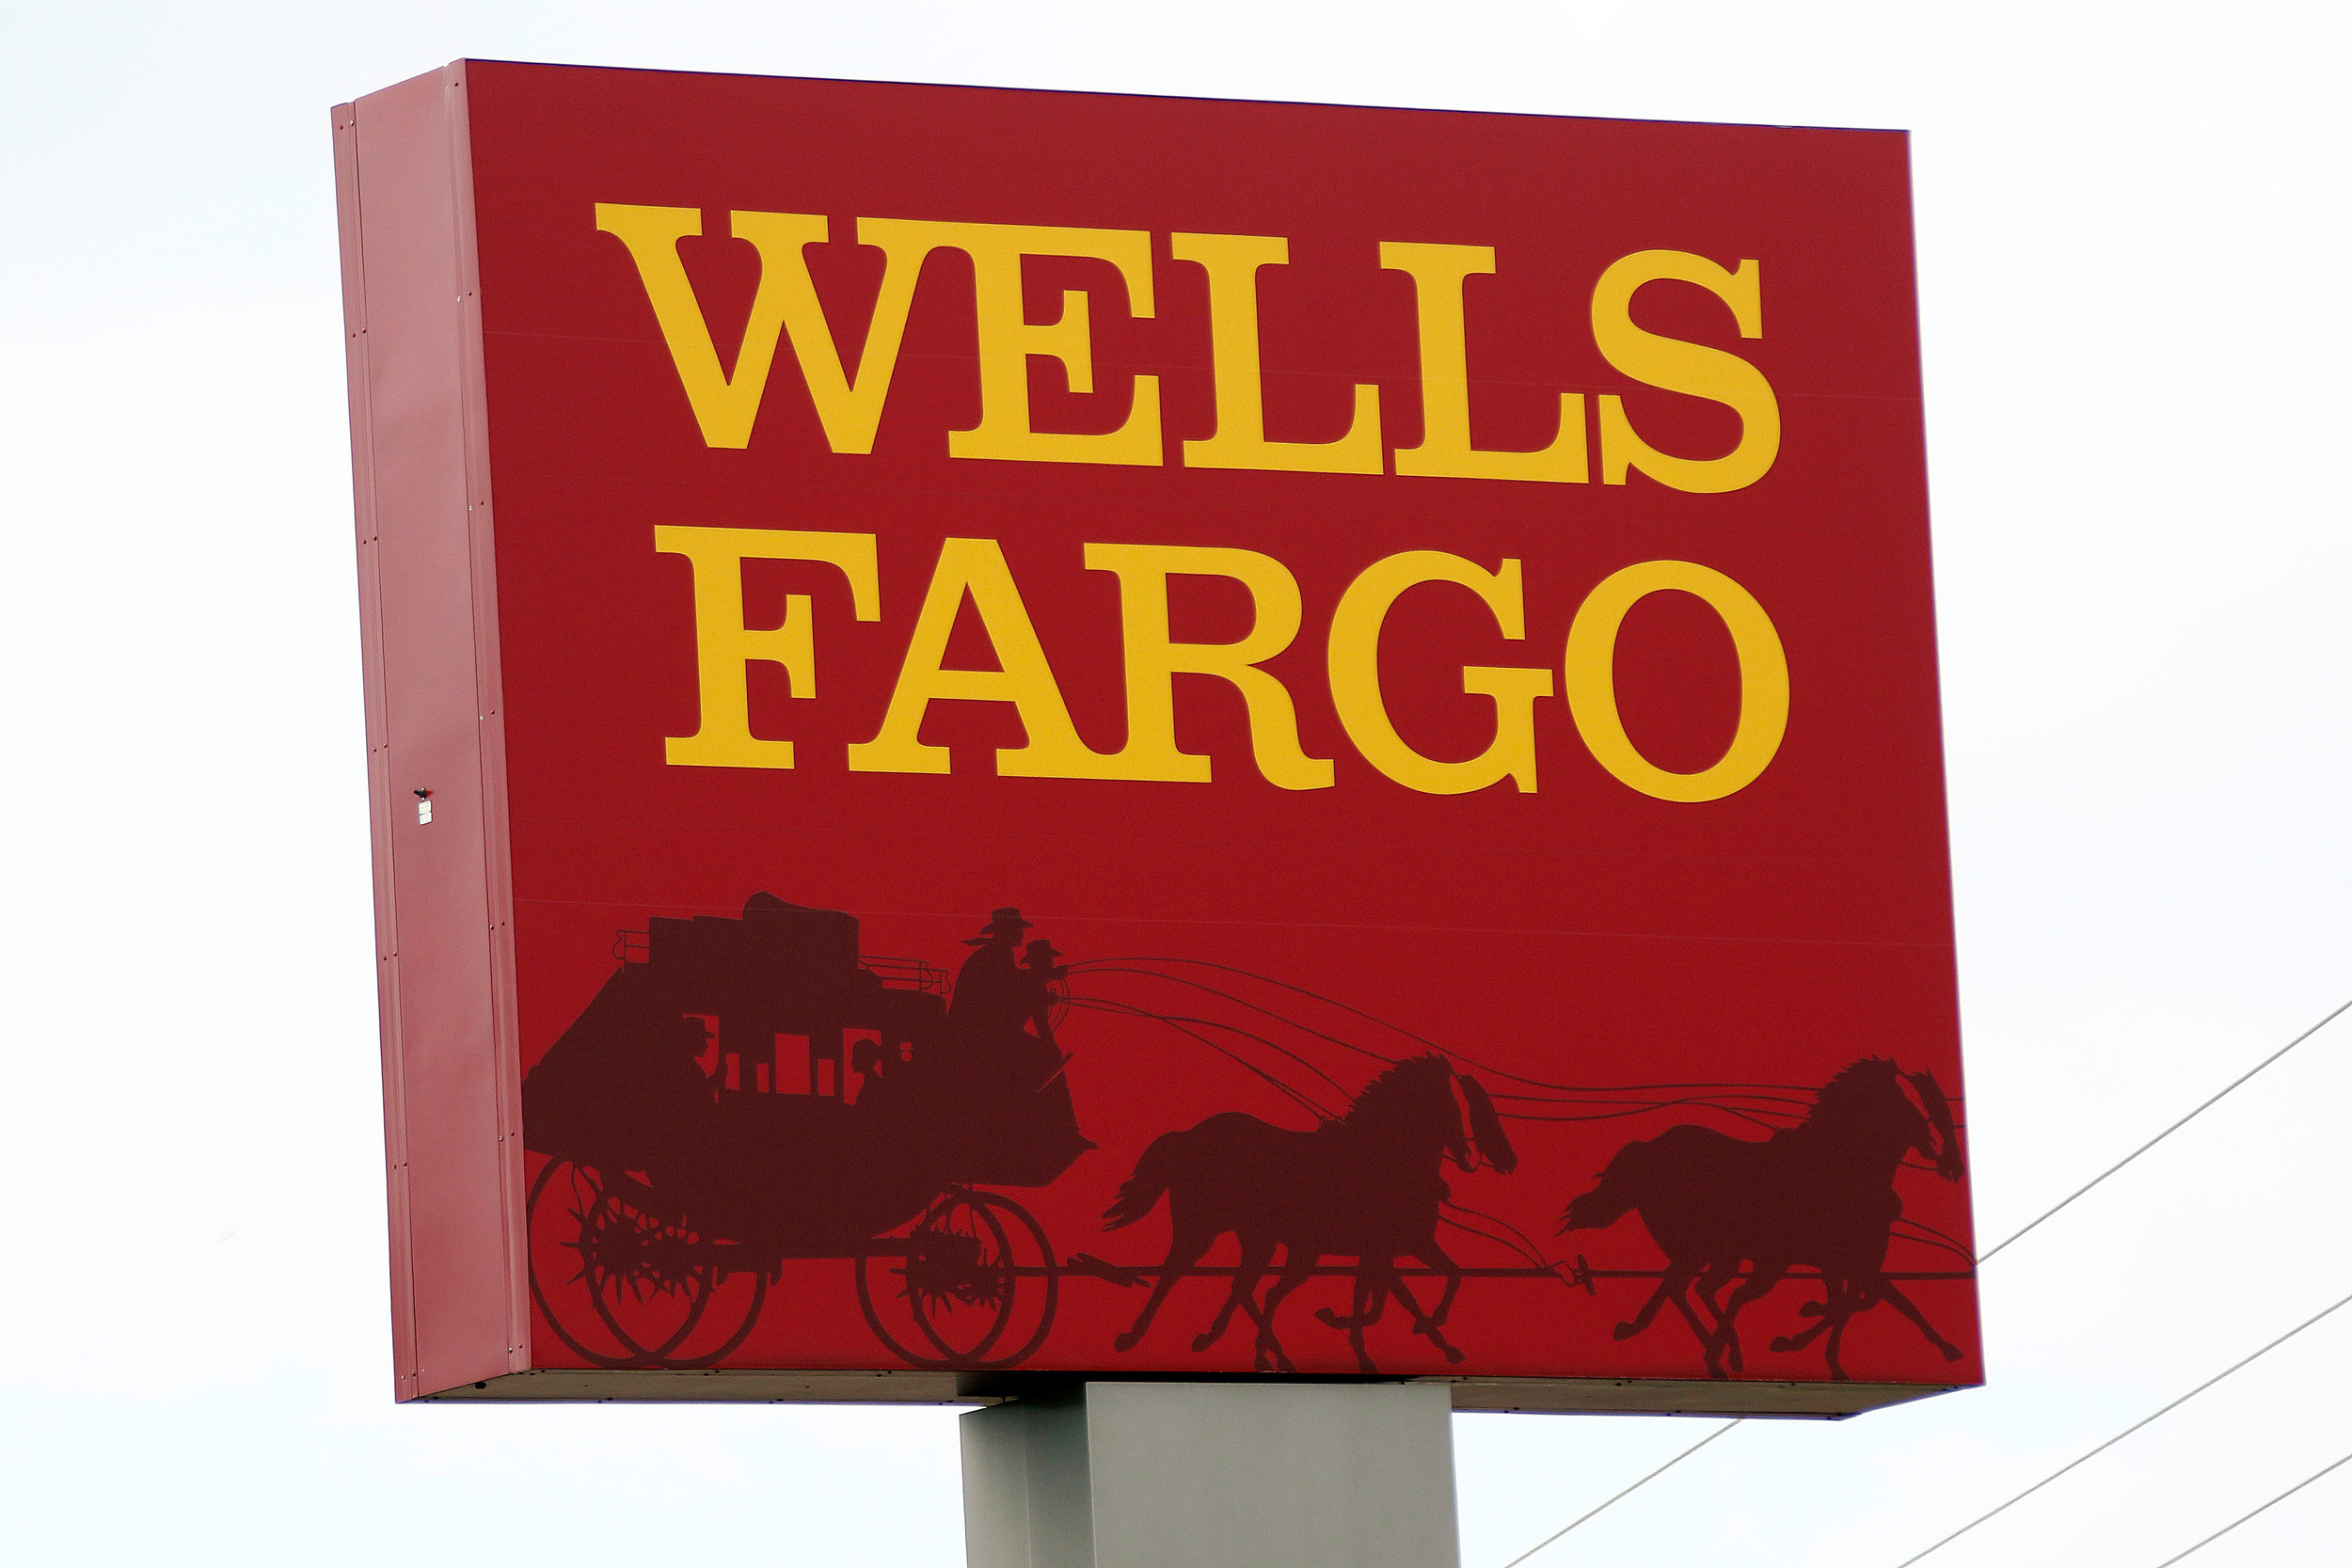 Wells Fargo Reports More Problem Accounts